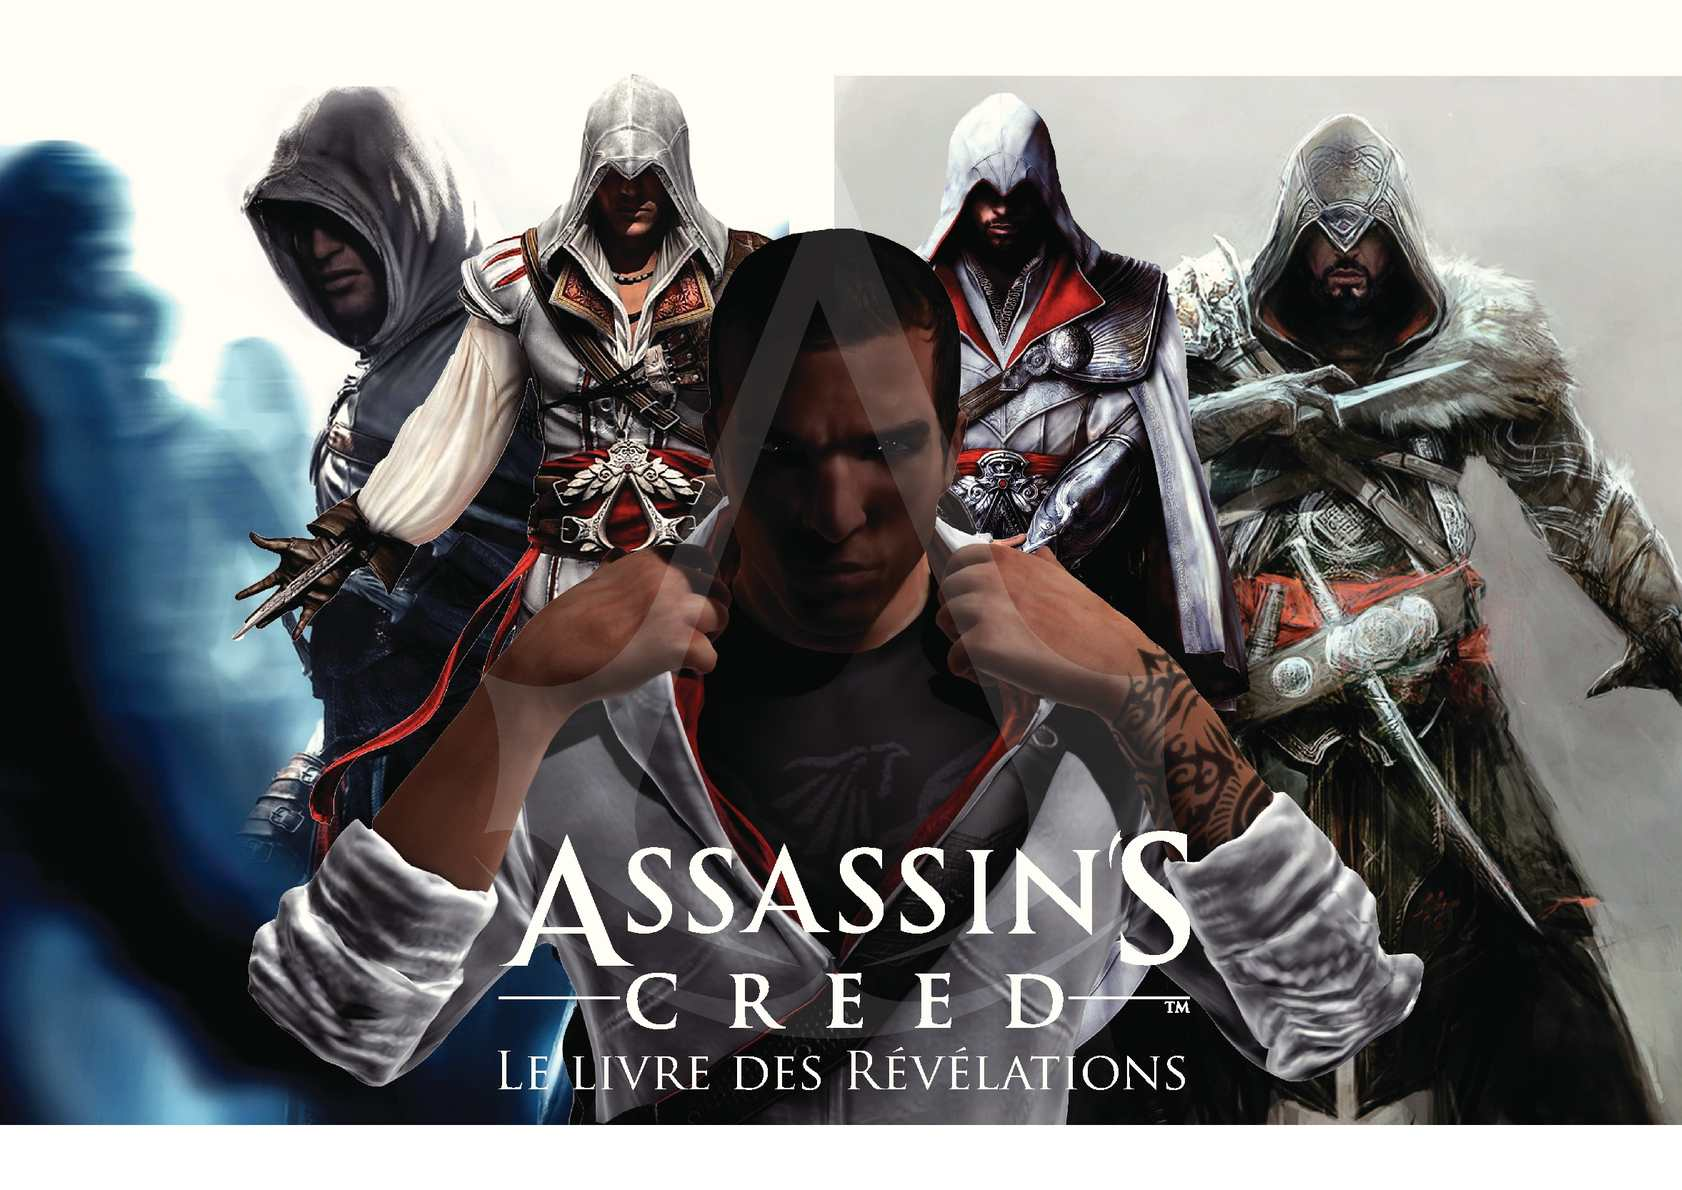 Assassin's Creed l'encyclopedie